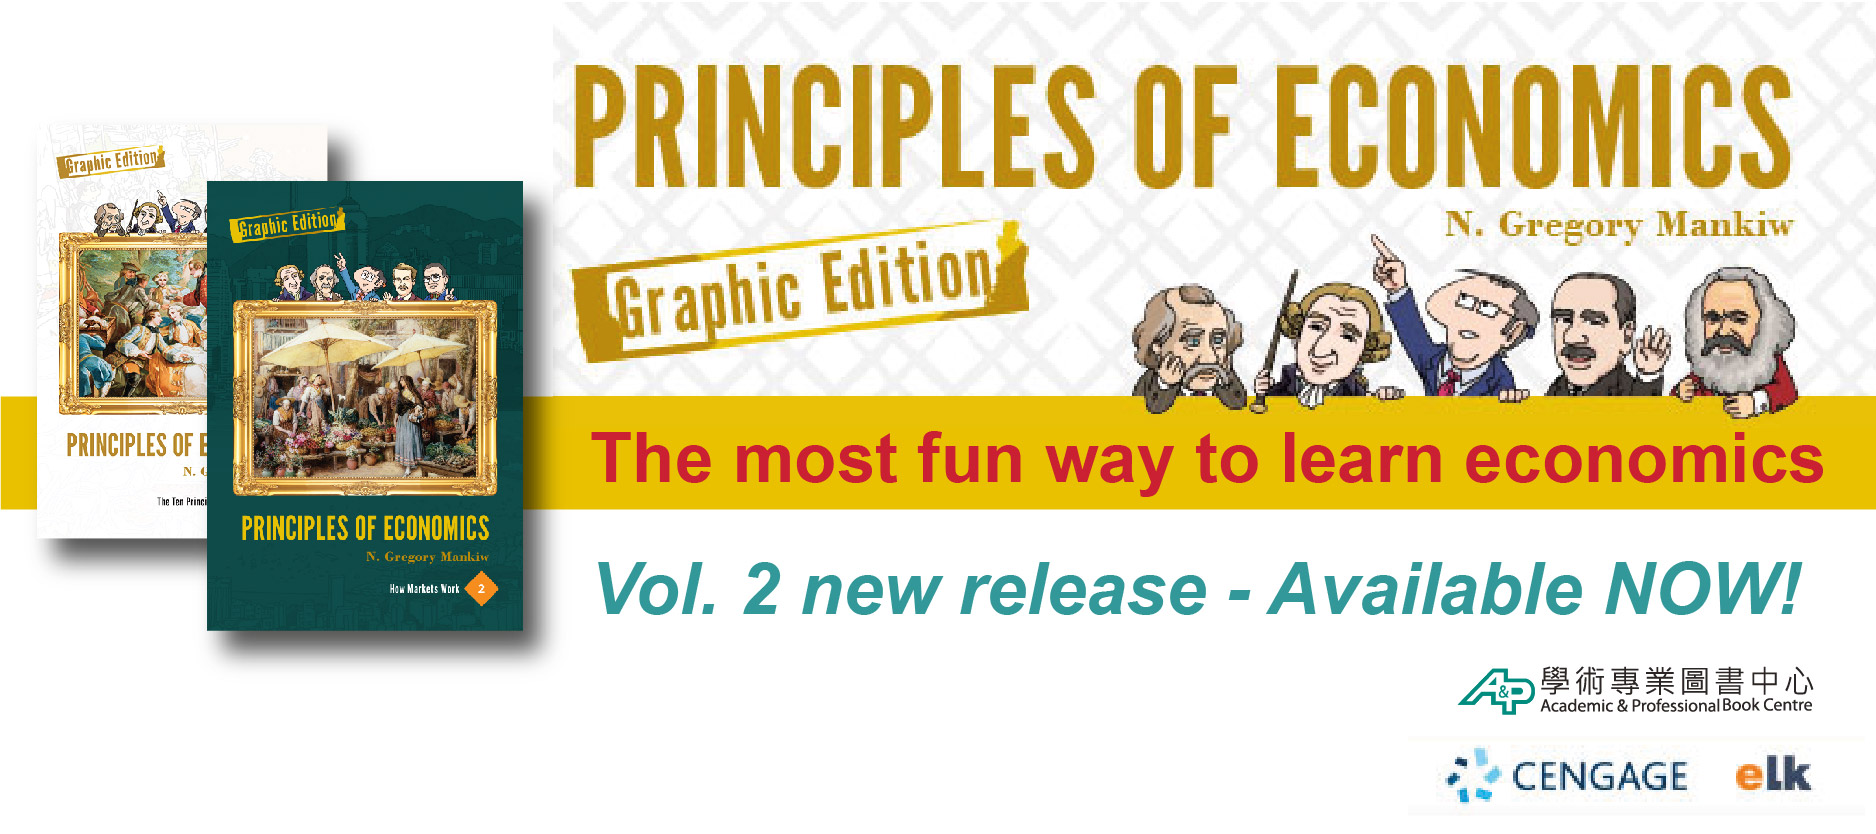 Principles of Economics